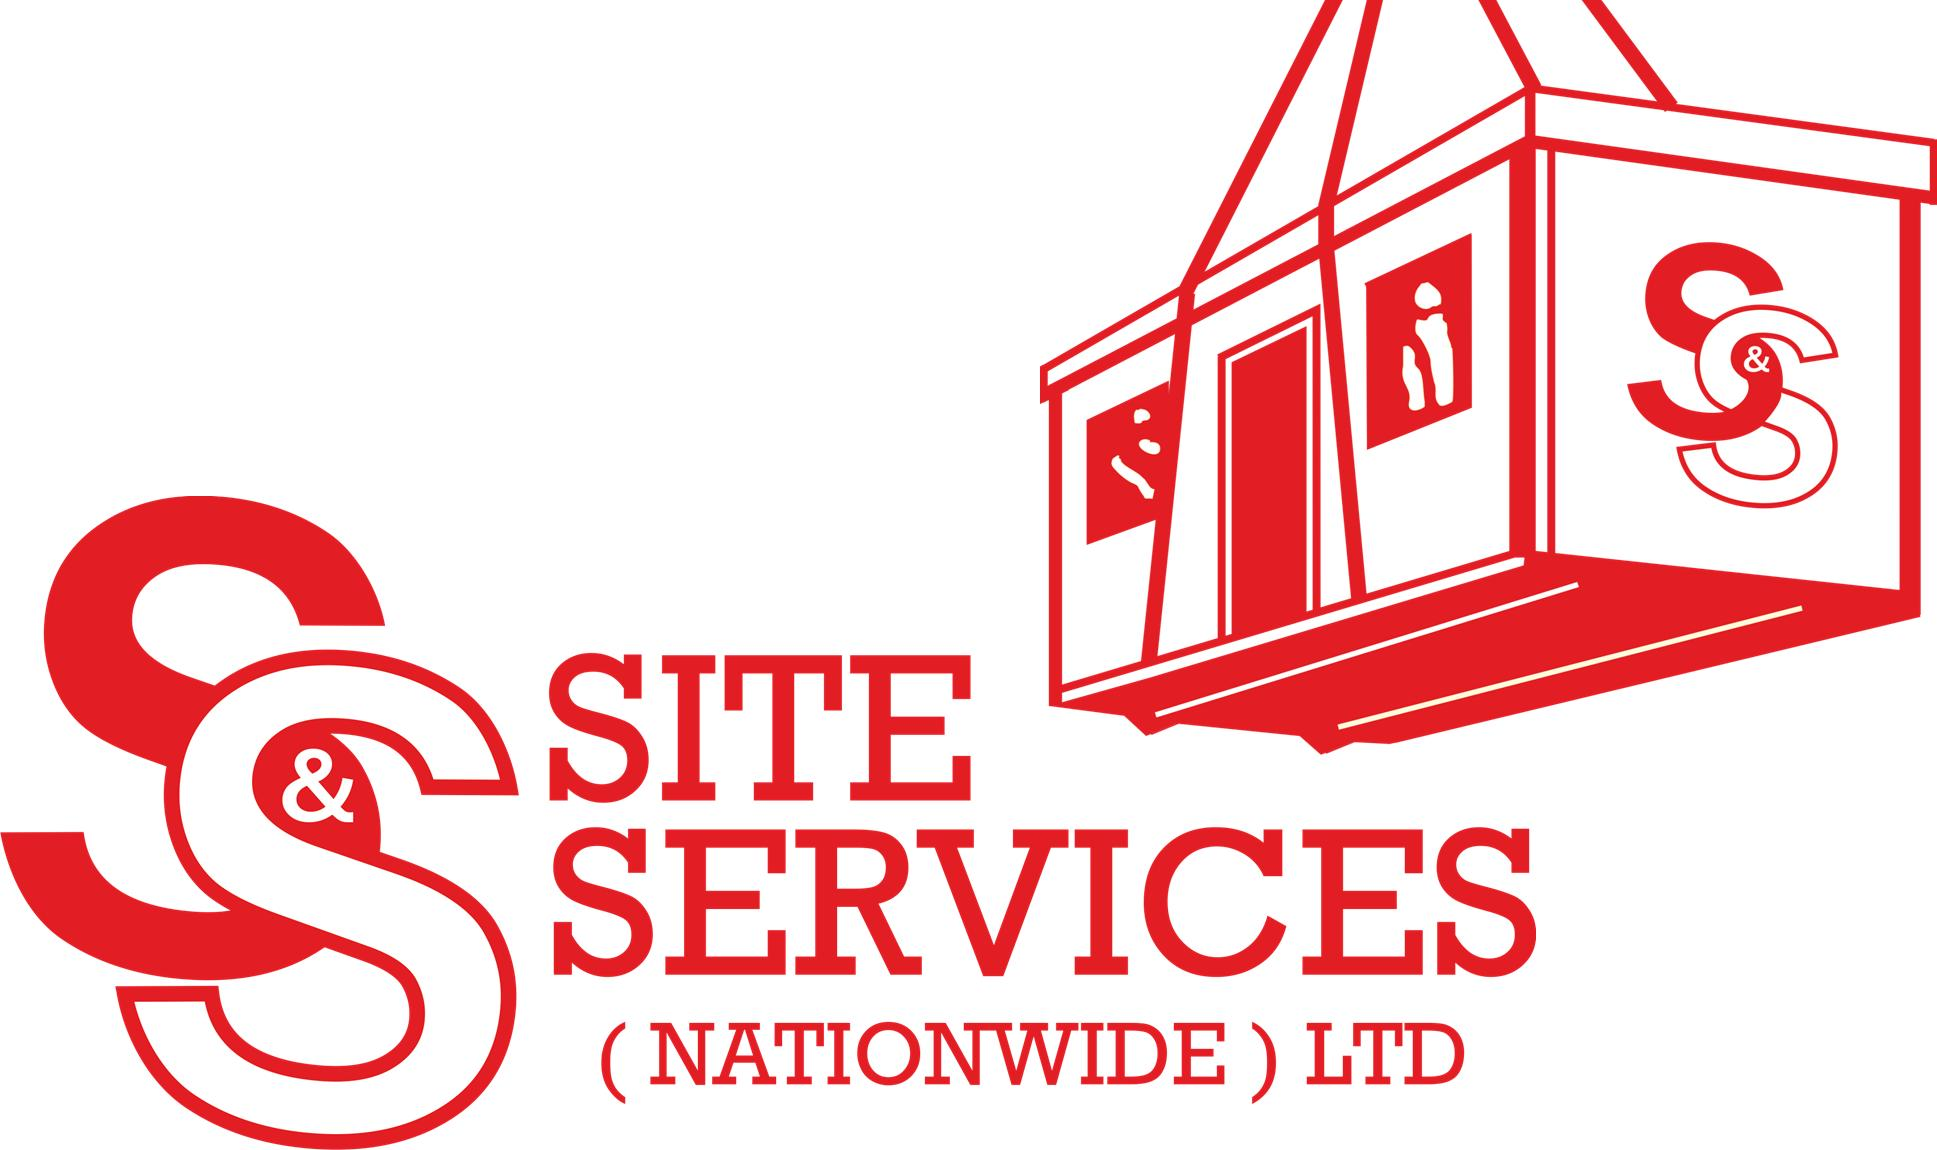 S and S Site Services (Nationwide) Ltd Photo